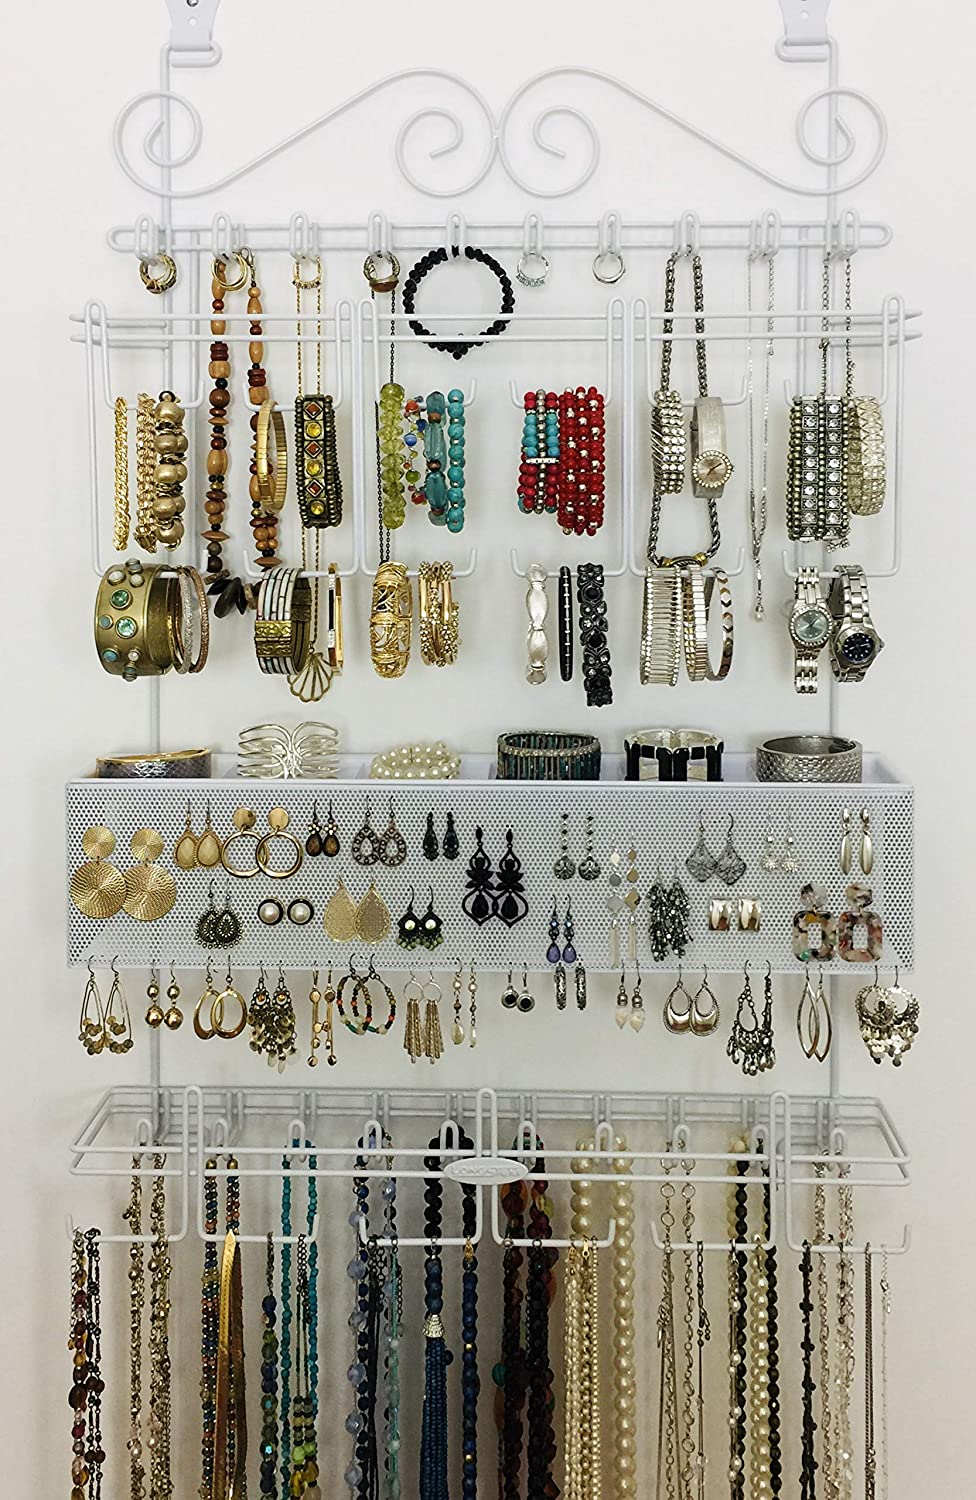 Longstem Organizers Over Door Wall Jewelry Organizer Rated Best Unique Patented Product White Amazon Ca Home Kitchen